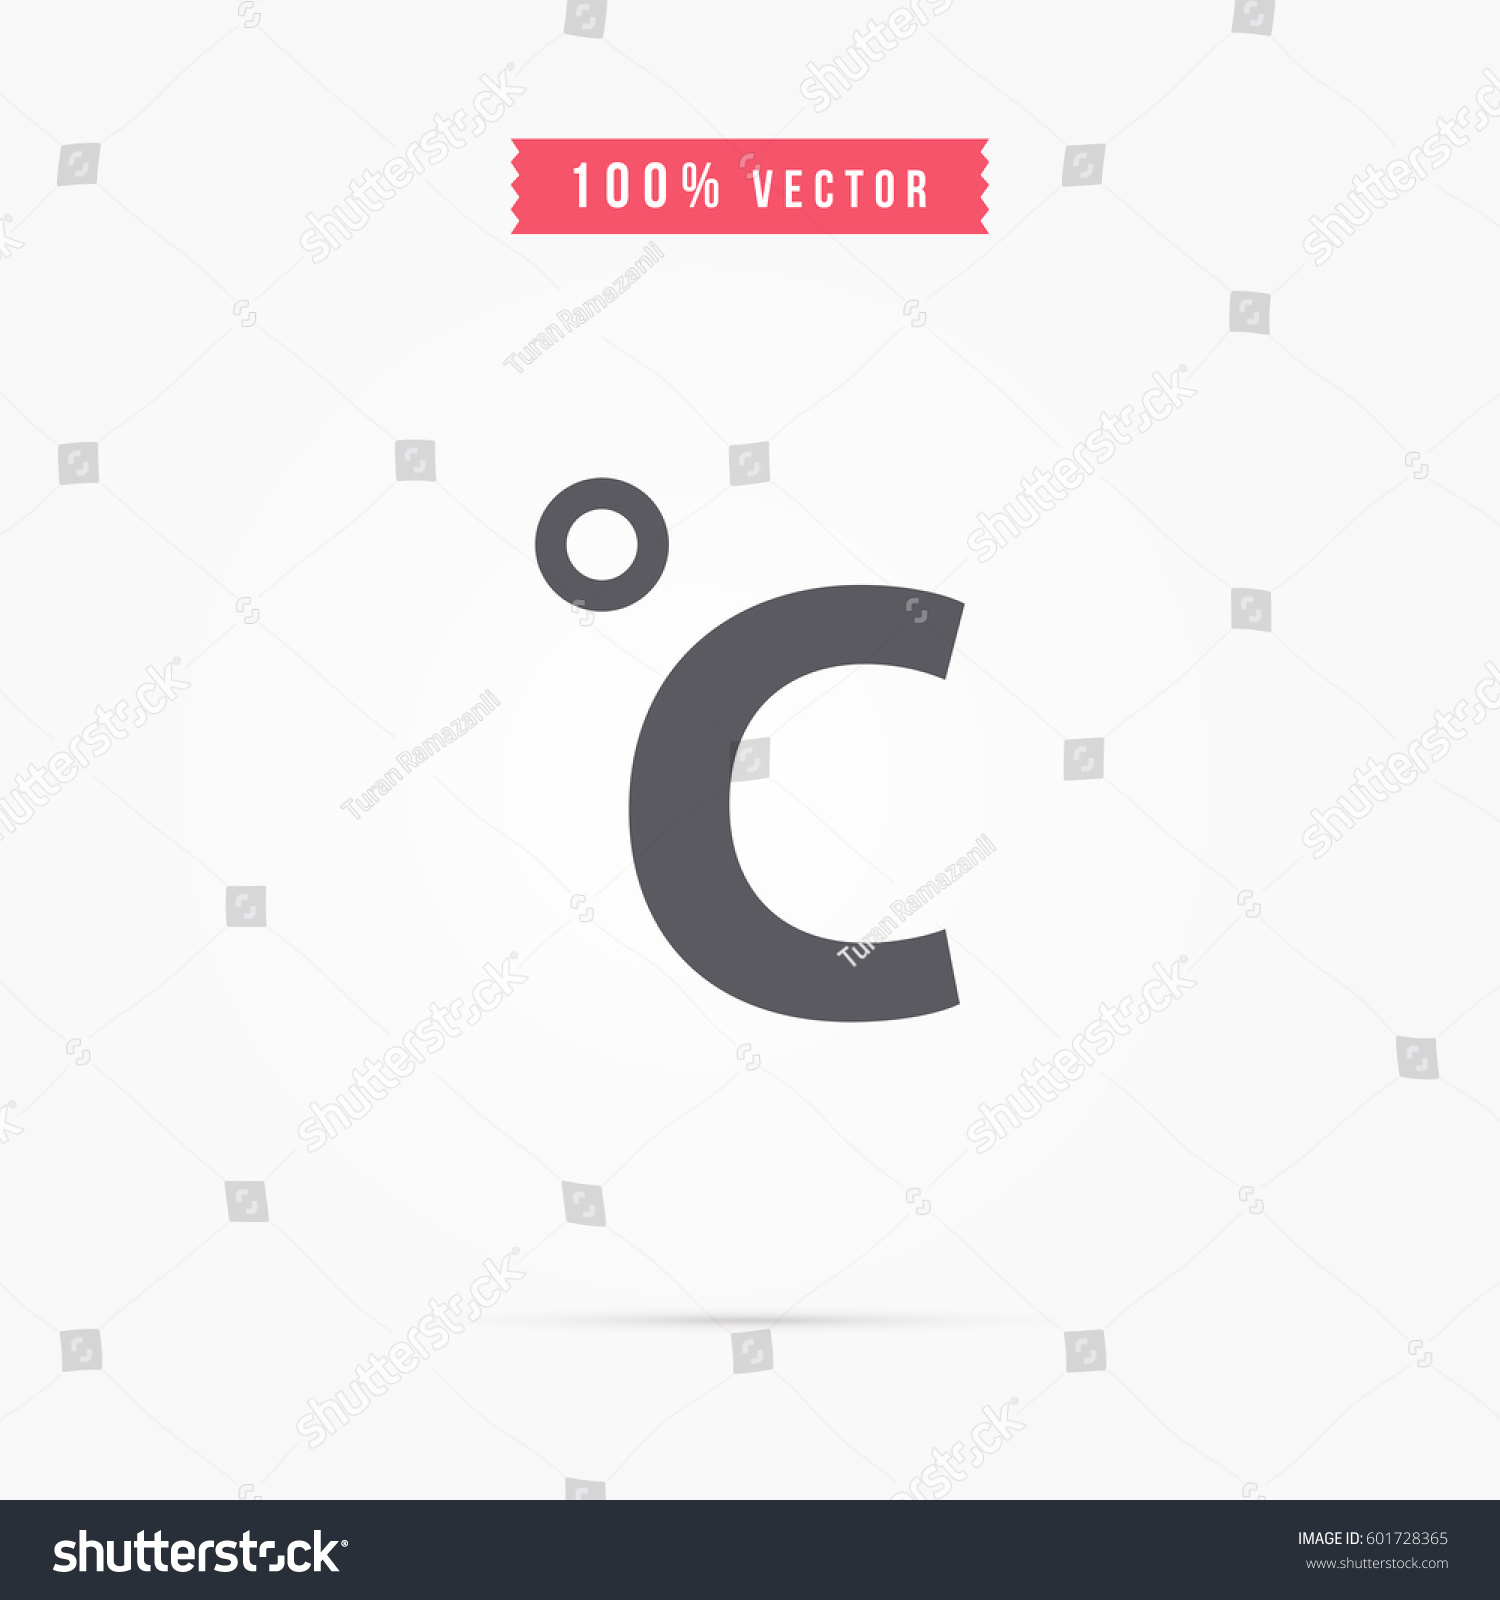 Celsius Degrees Symbol Stock Vector Royalty Free 601728365